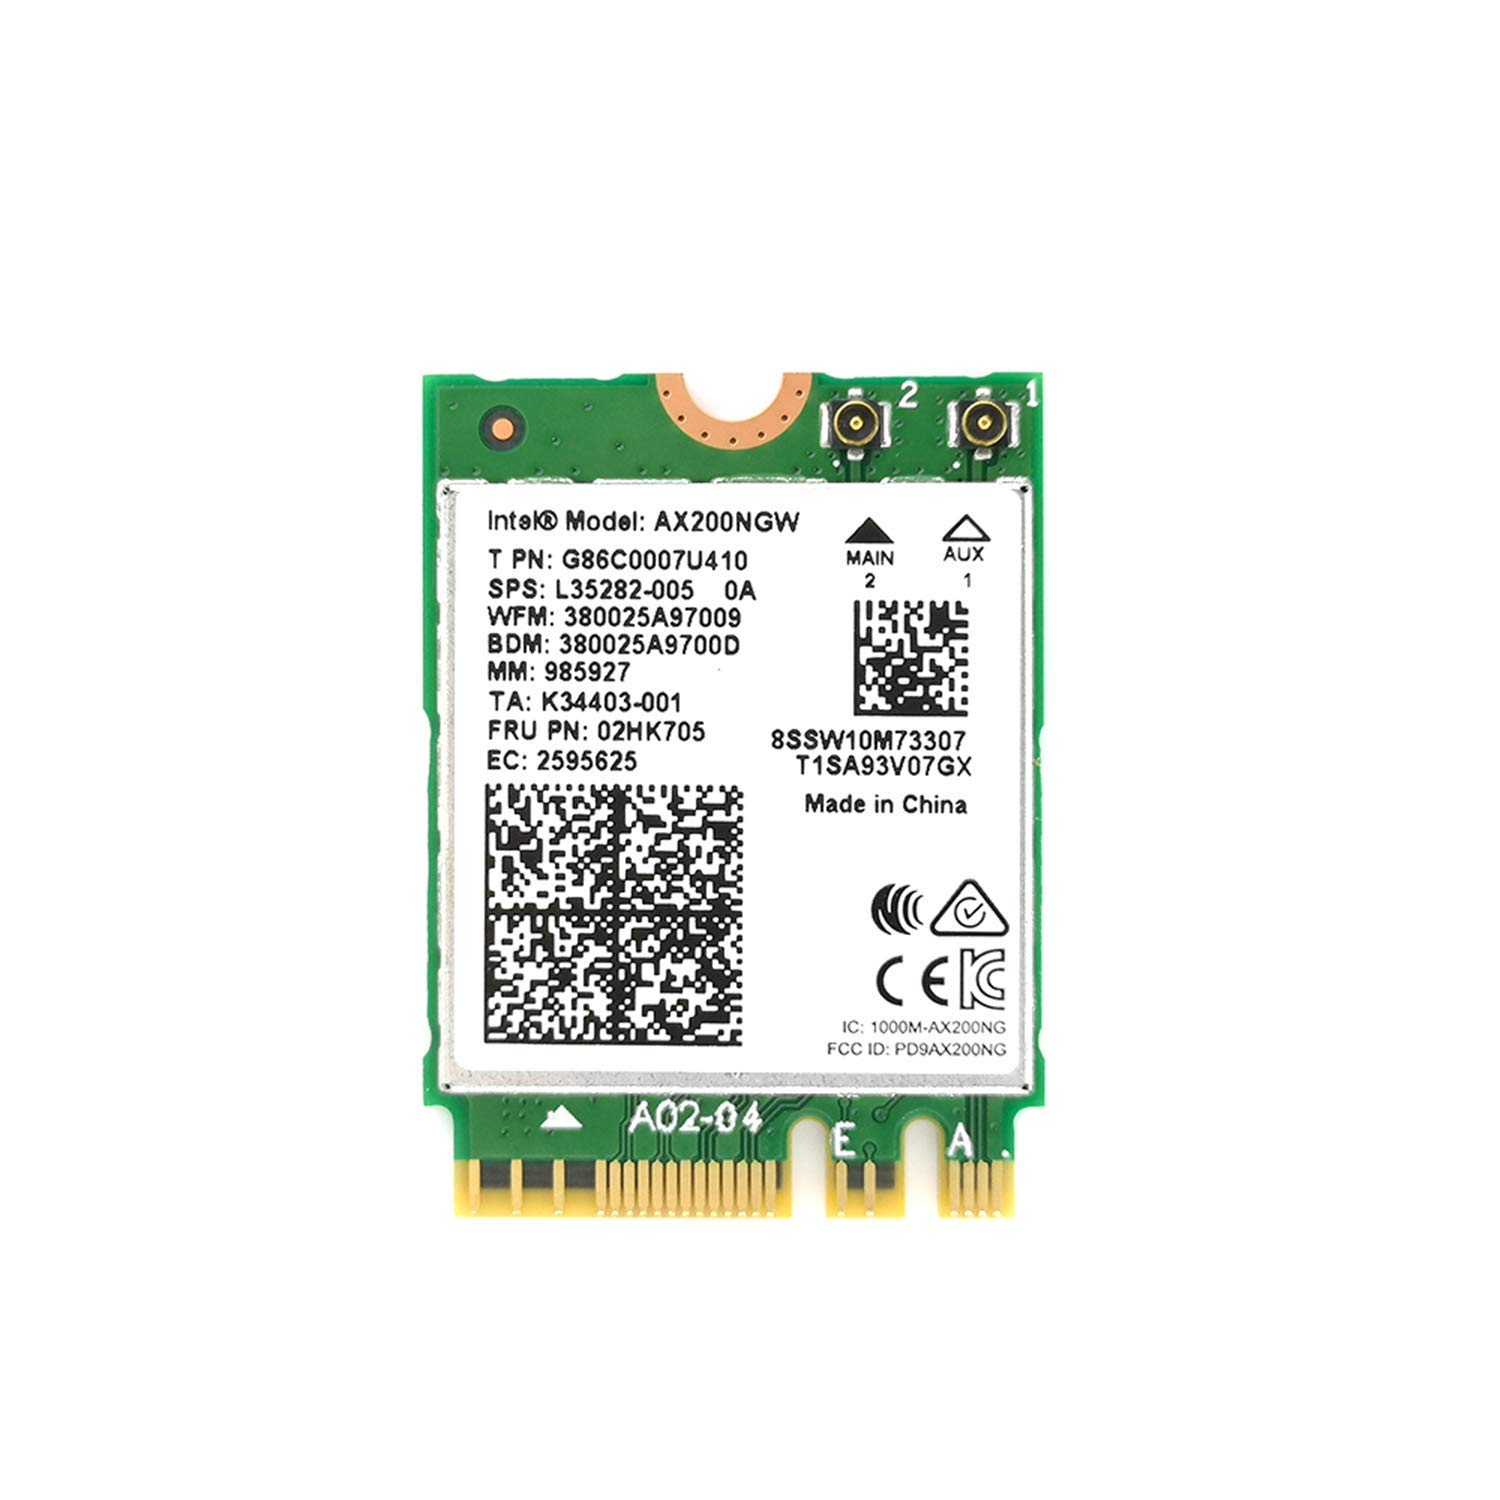 Wi-Fi 6 11AX WiFi Module Intel AX200NGW 2 x 2 MU-MIMO Wireless Card with Bluetooth 5.0 Support Windows 10 64bit/ Google Chrome OS/Linux Gigabit and Low Latency Built for Gaming, M.2/NGFF ... by UFON